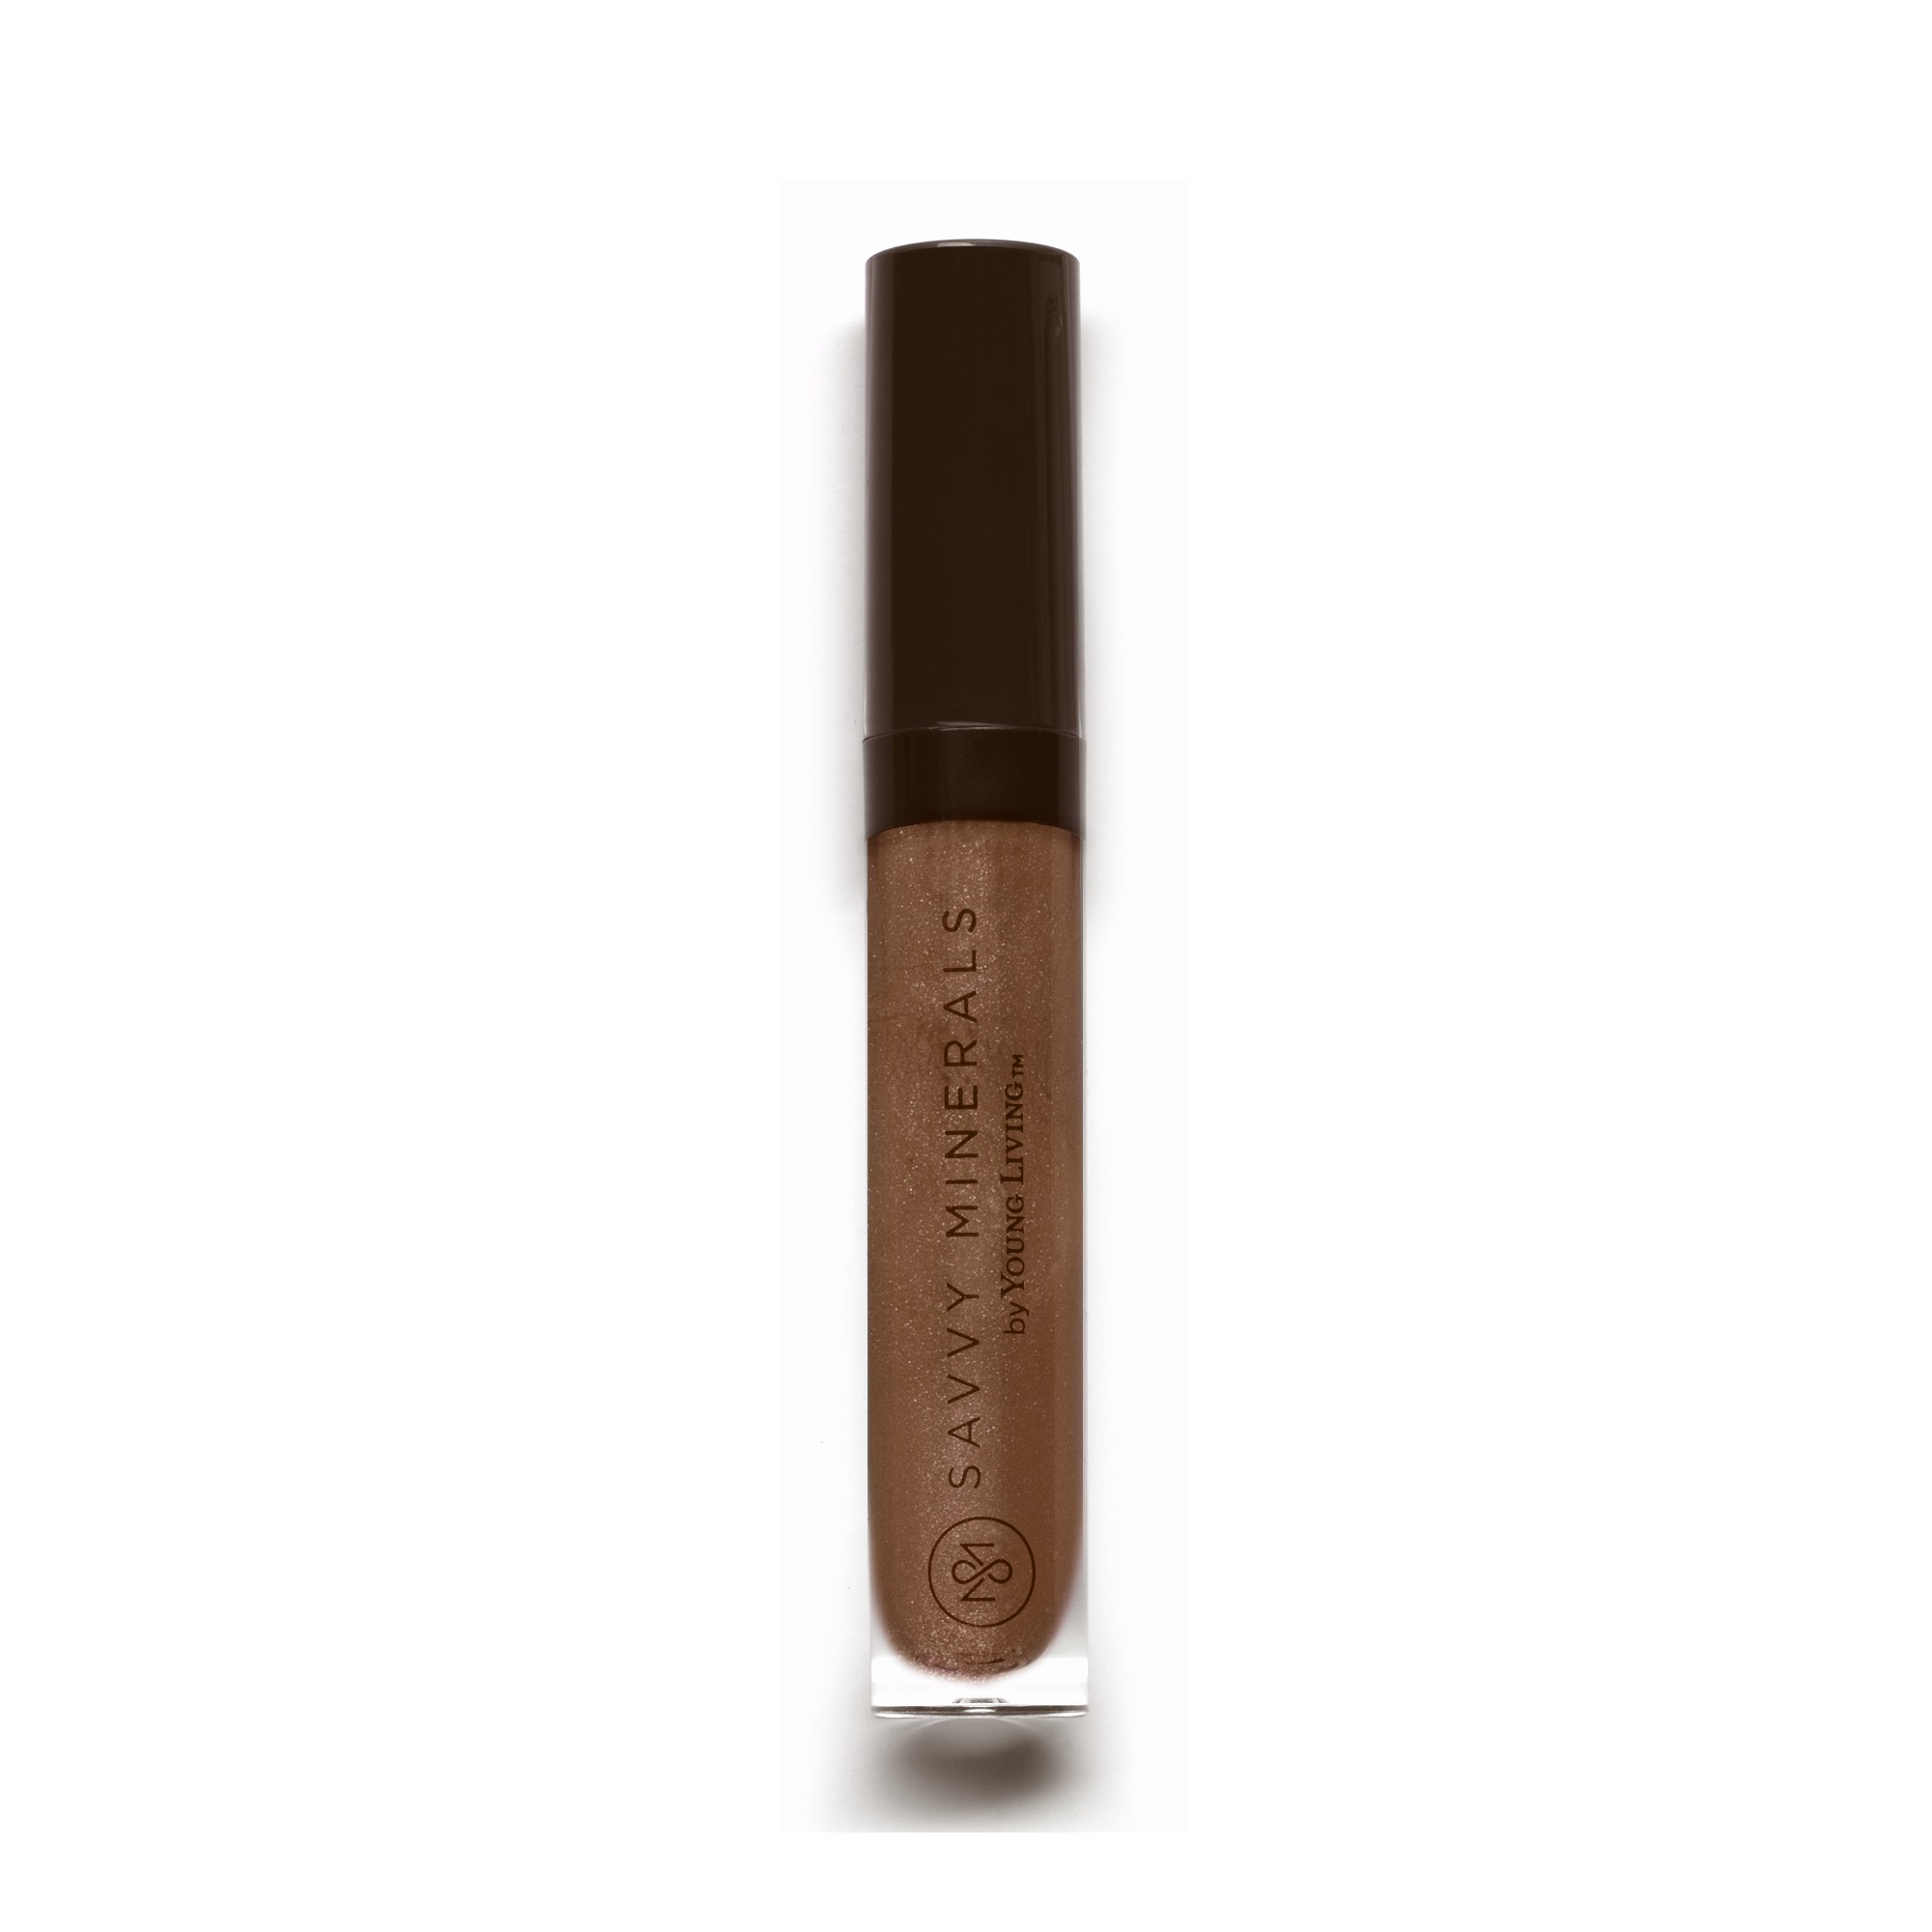 JOURNEY    Journey is a bronze nude color. This lip gloss is infused with Peppermint essential oil and provides natural-looking, sheer to medium color coverage while adding shine. It applies flawlessly without the sticky feeling of many lip glosses. It's also formulated without parabens, phthalates, petrochemicals, bismuth, talc, synthetic fragrances, or synthetic colorants.   Click here   to learn more about this product.